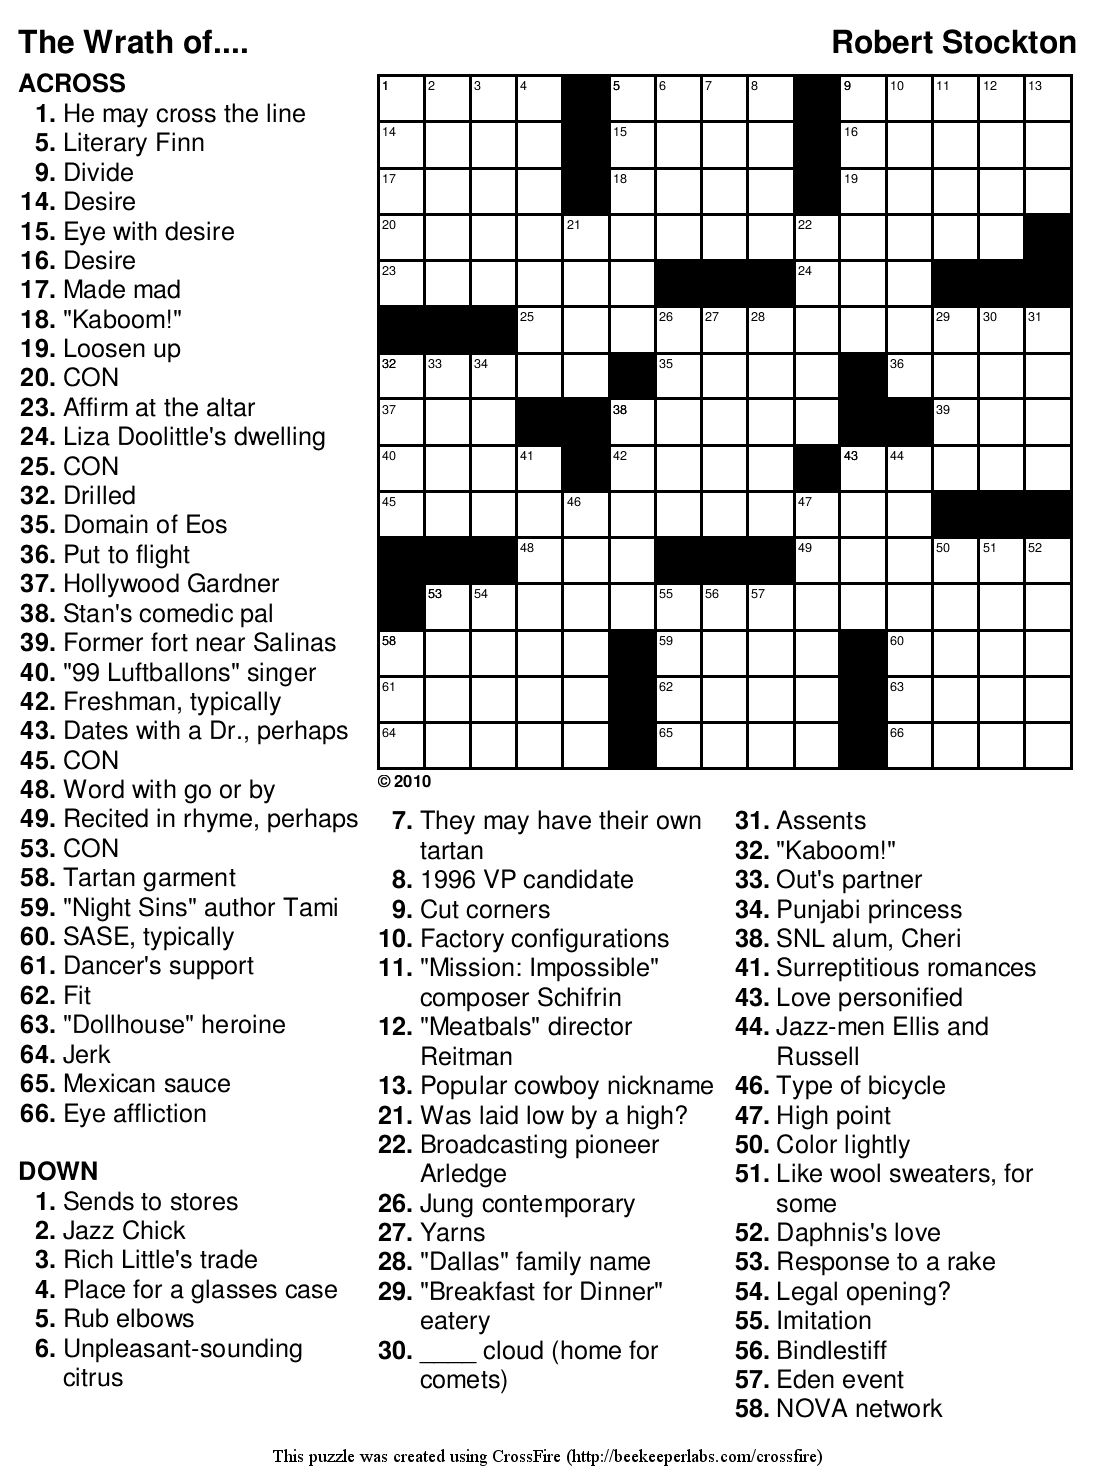 Marvelous Crossword Puzzles Easy Printable Free Org | Chas's Board - Printable Crossword Puzzles Solutions